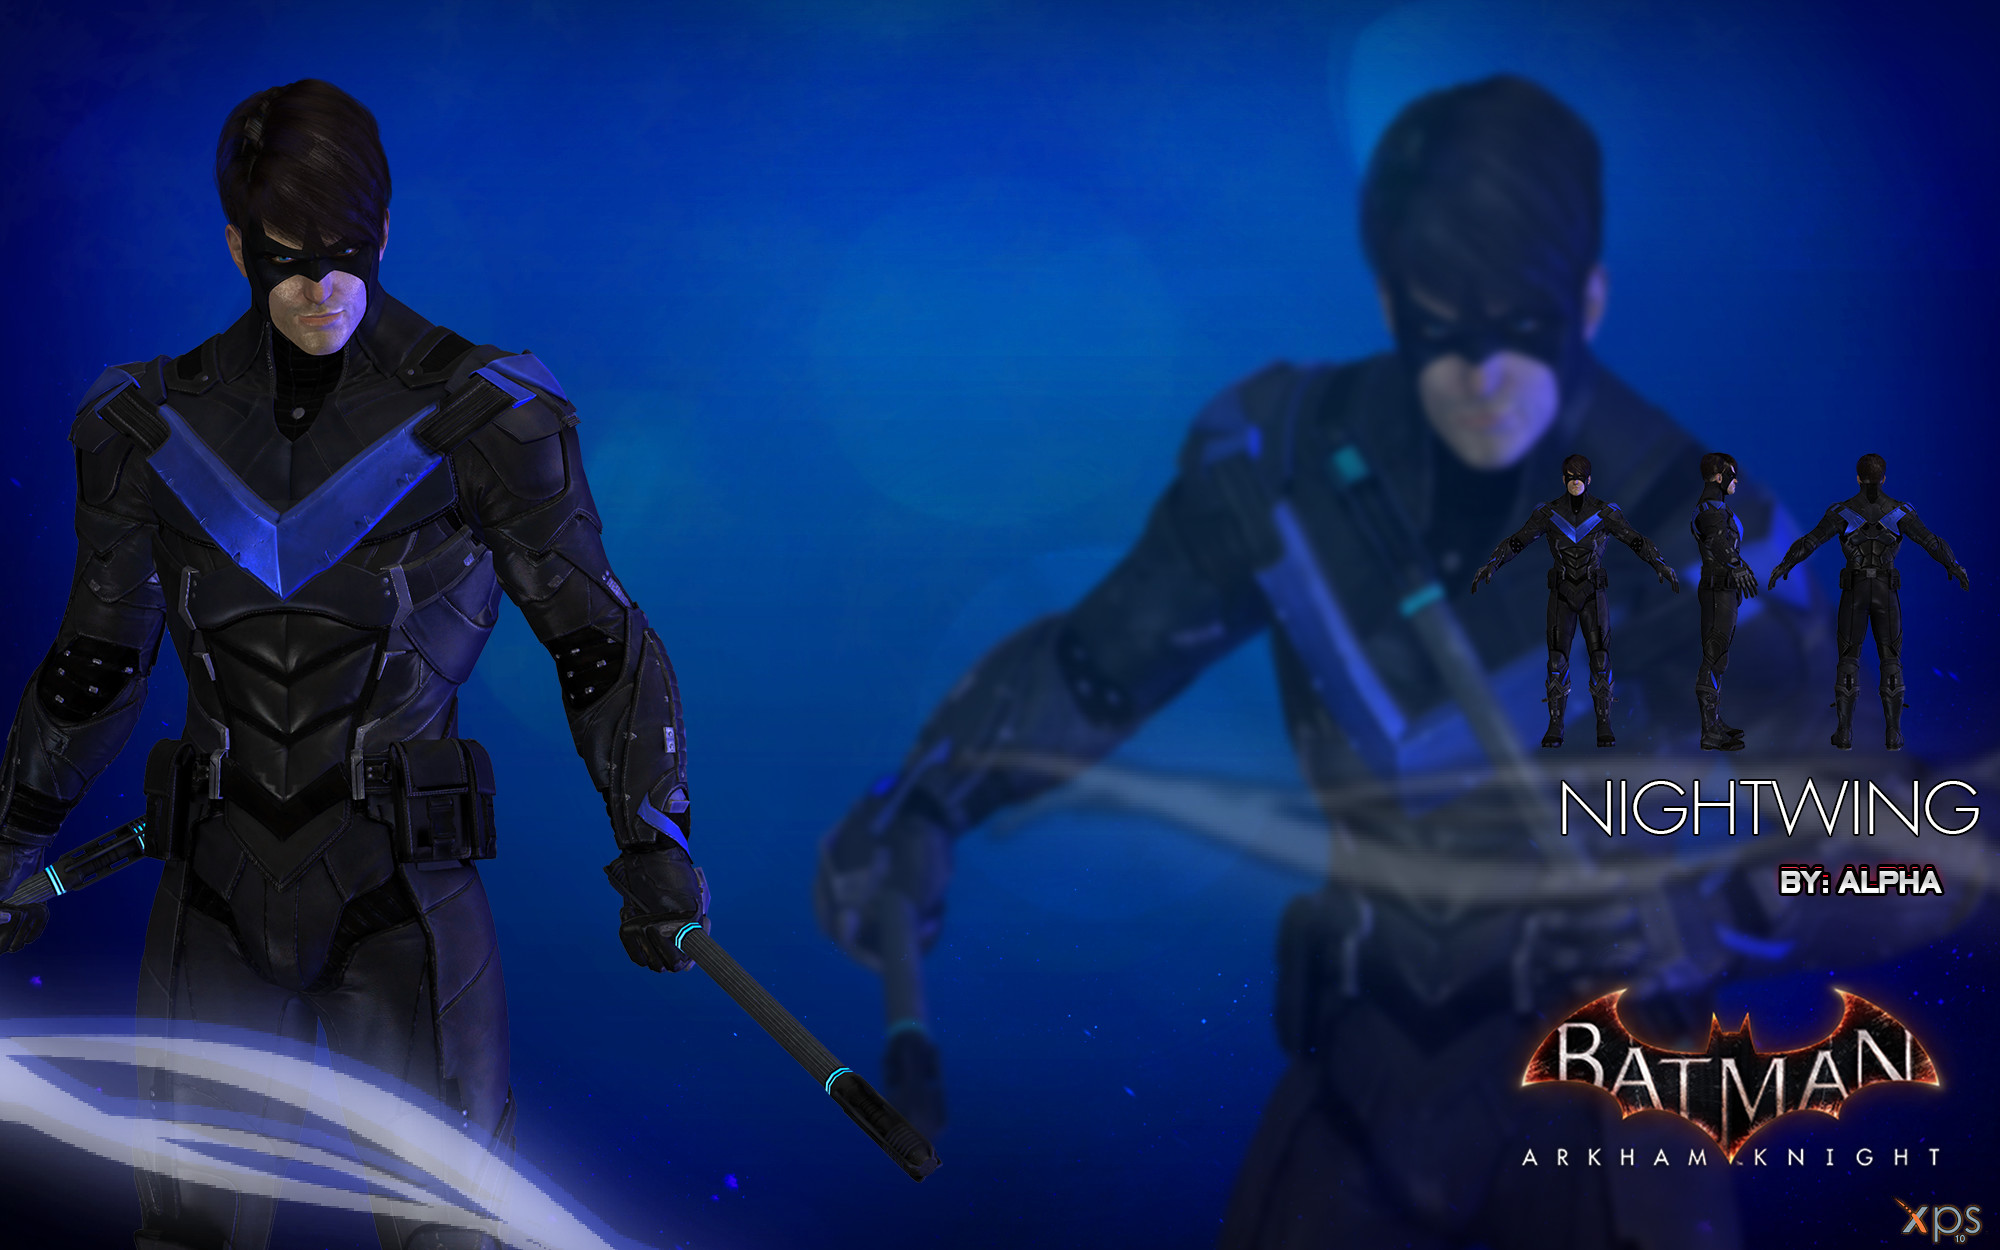 1920x1080 Wallpaper Ultra High Res Nyr Nightwing